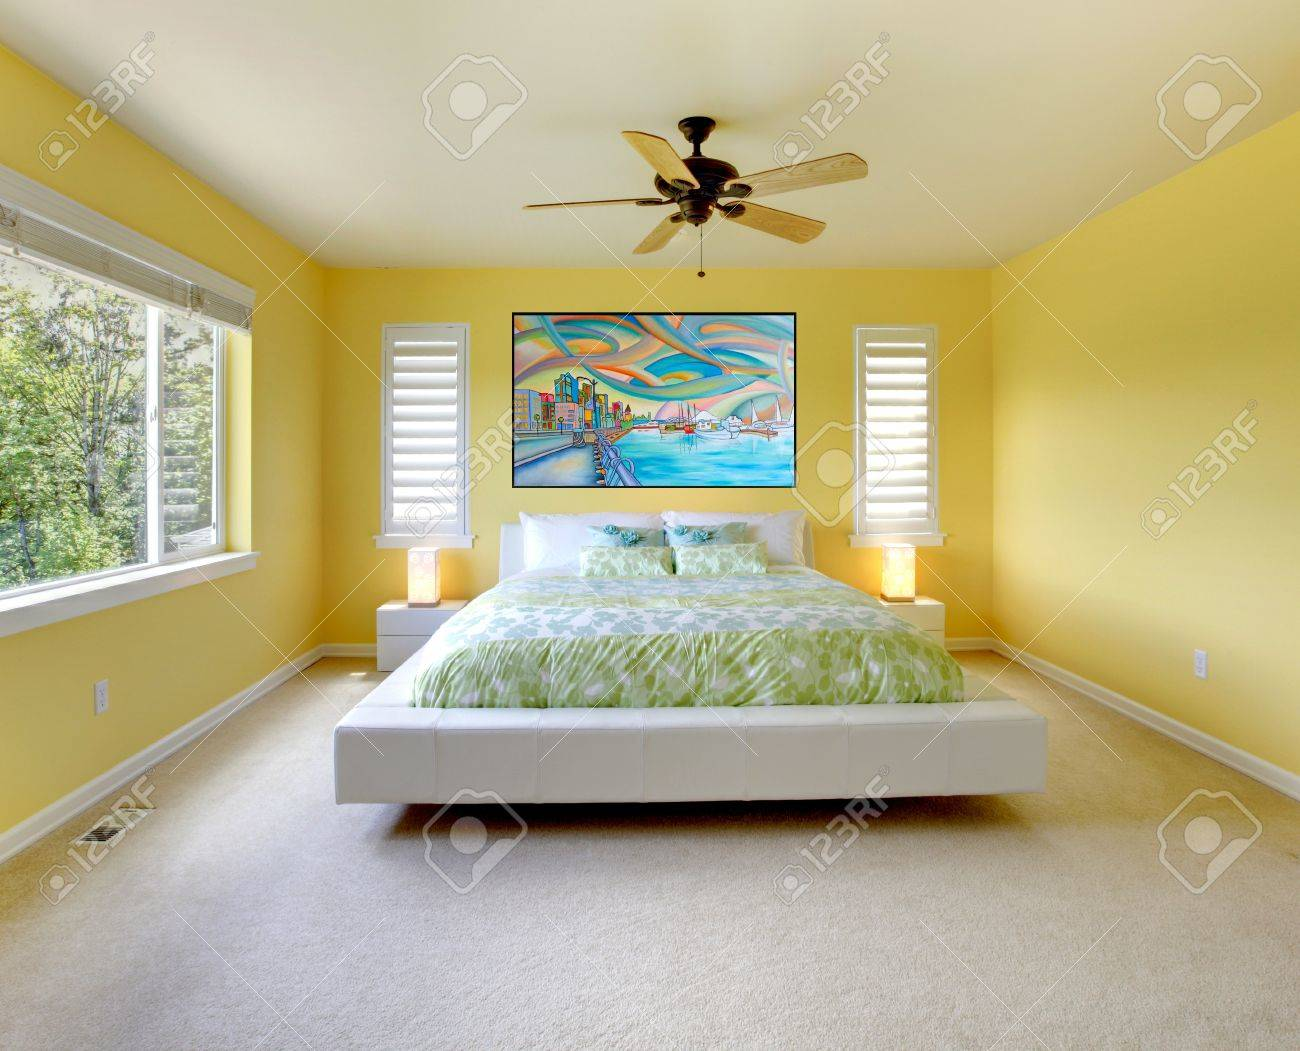 Yellow modern bedroom interior with white bed. Stock Photo - 14287622